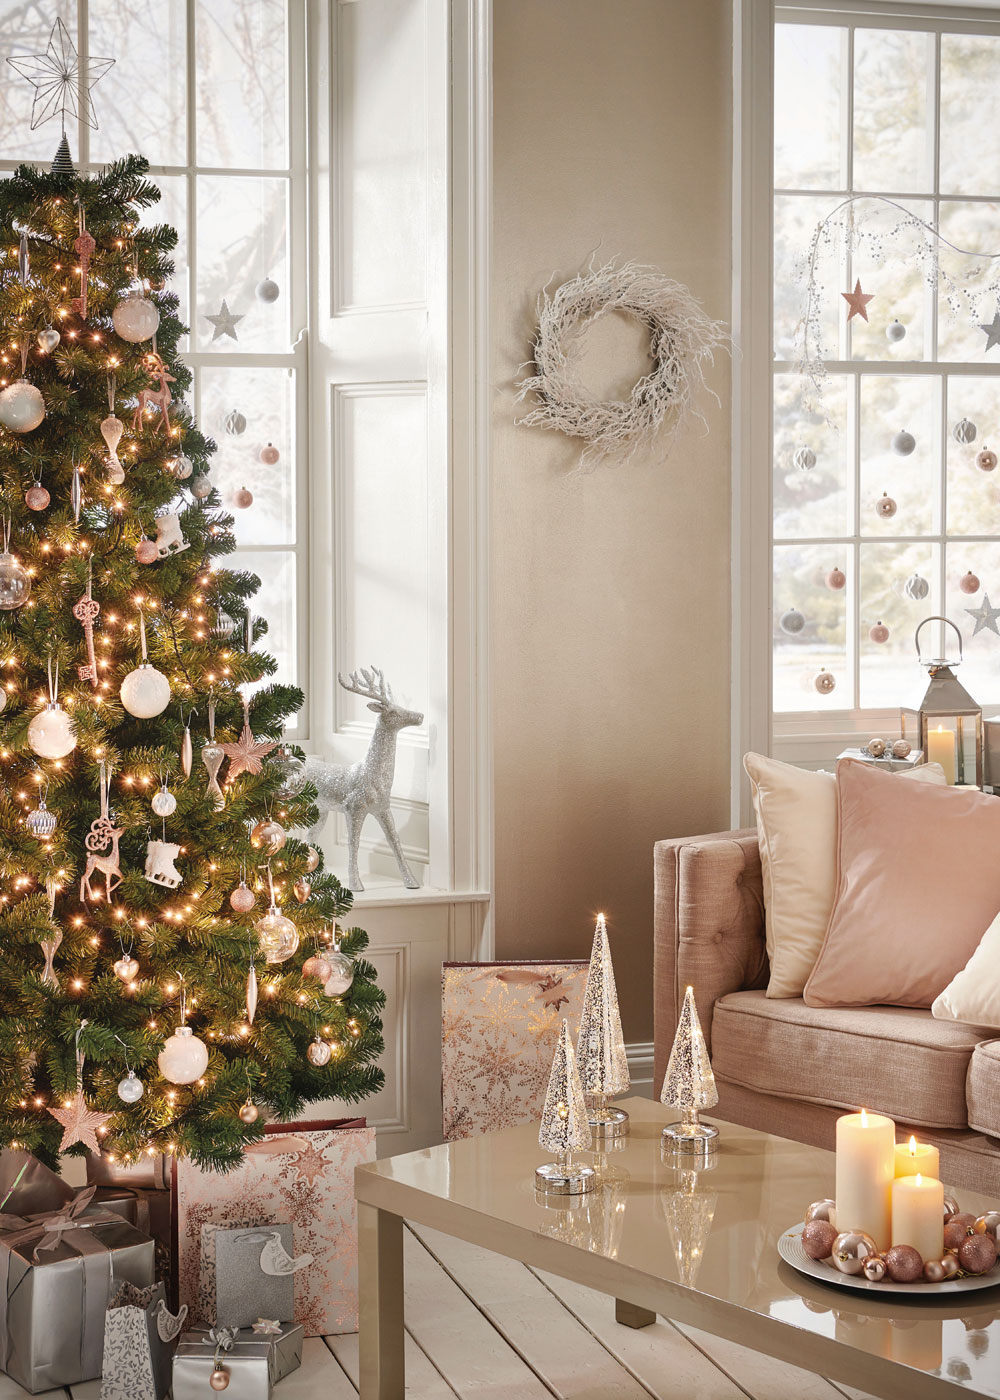 Looking for budget Christmas decorations to deck your home out this festive season? Look no further. In today's post, I'm sharing seven of the best shops on the high street to buy cheap Christmas decorations, from tree decorations, to Christmas Eve boxes, to Christmas dinnerware. Click through for some last minute simple holiday decorating ideas from Wilko #budgetchristmas #cheapchristmas #christmasdecor